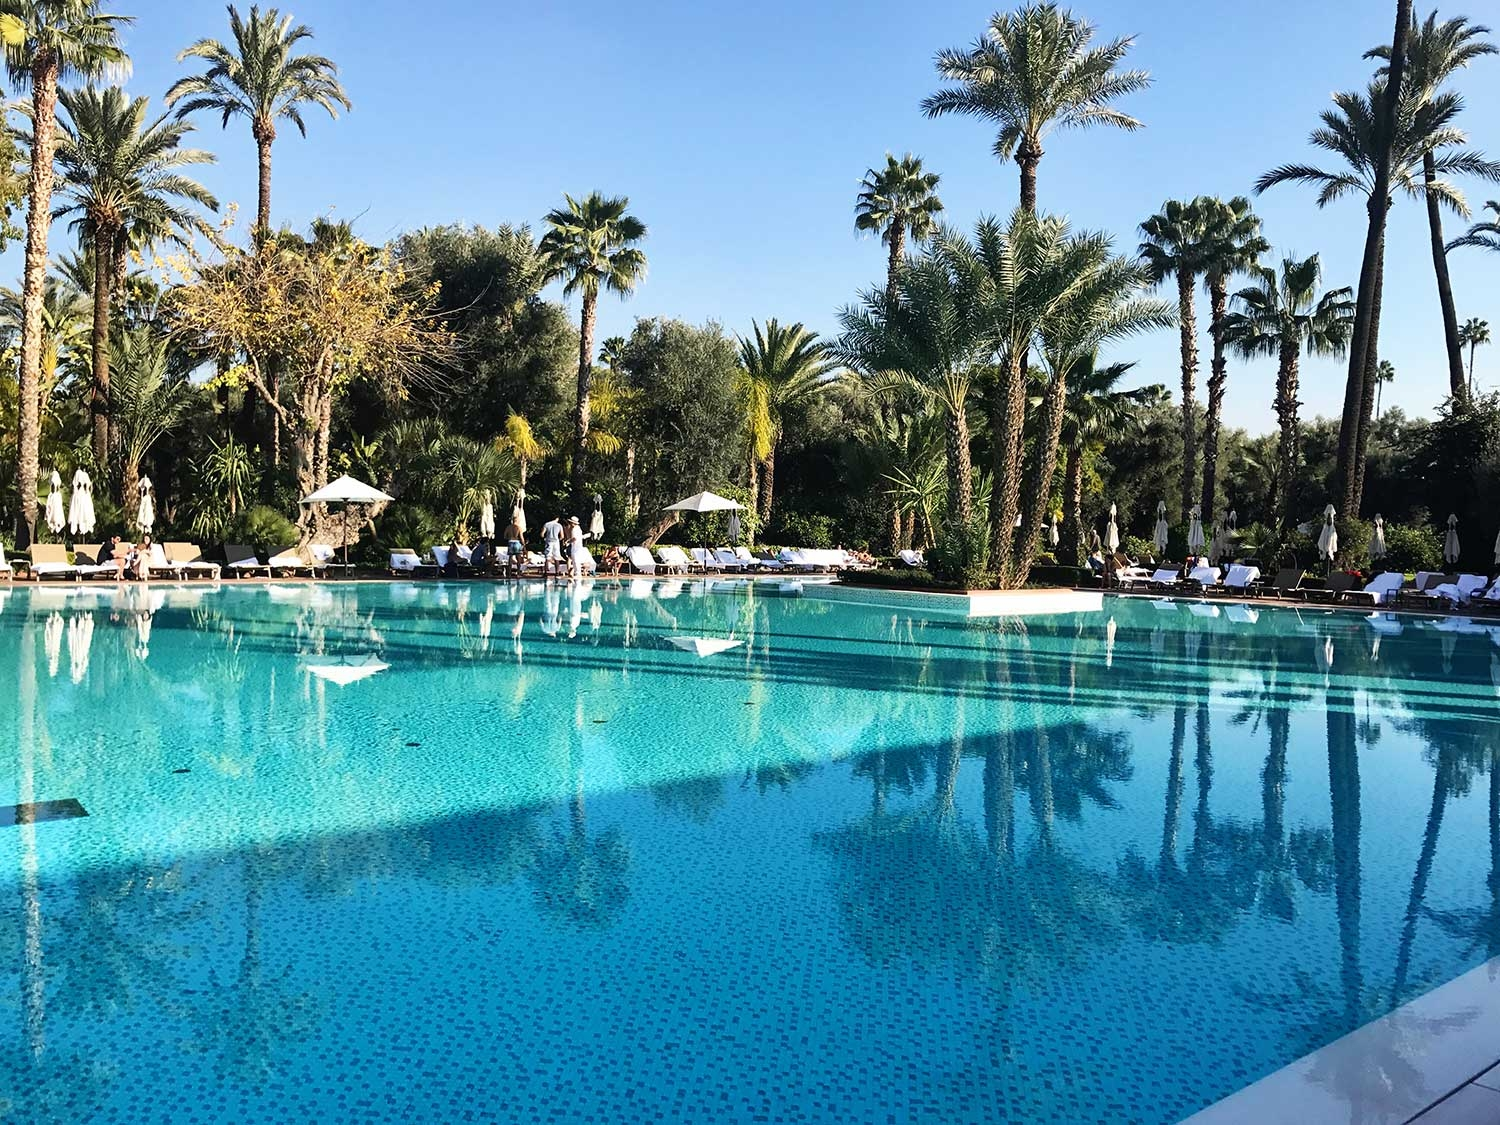 The vast, oasis like pool of La Mamounia